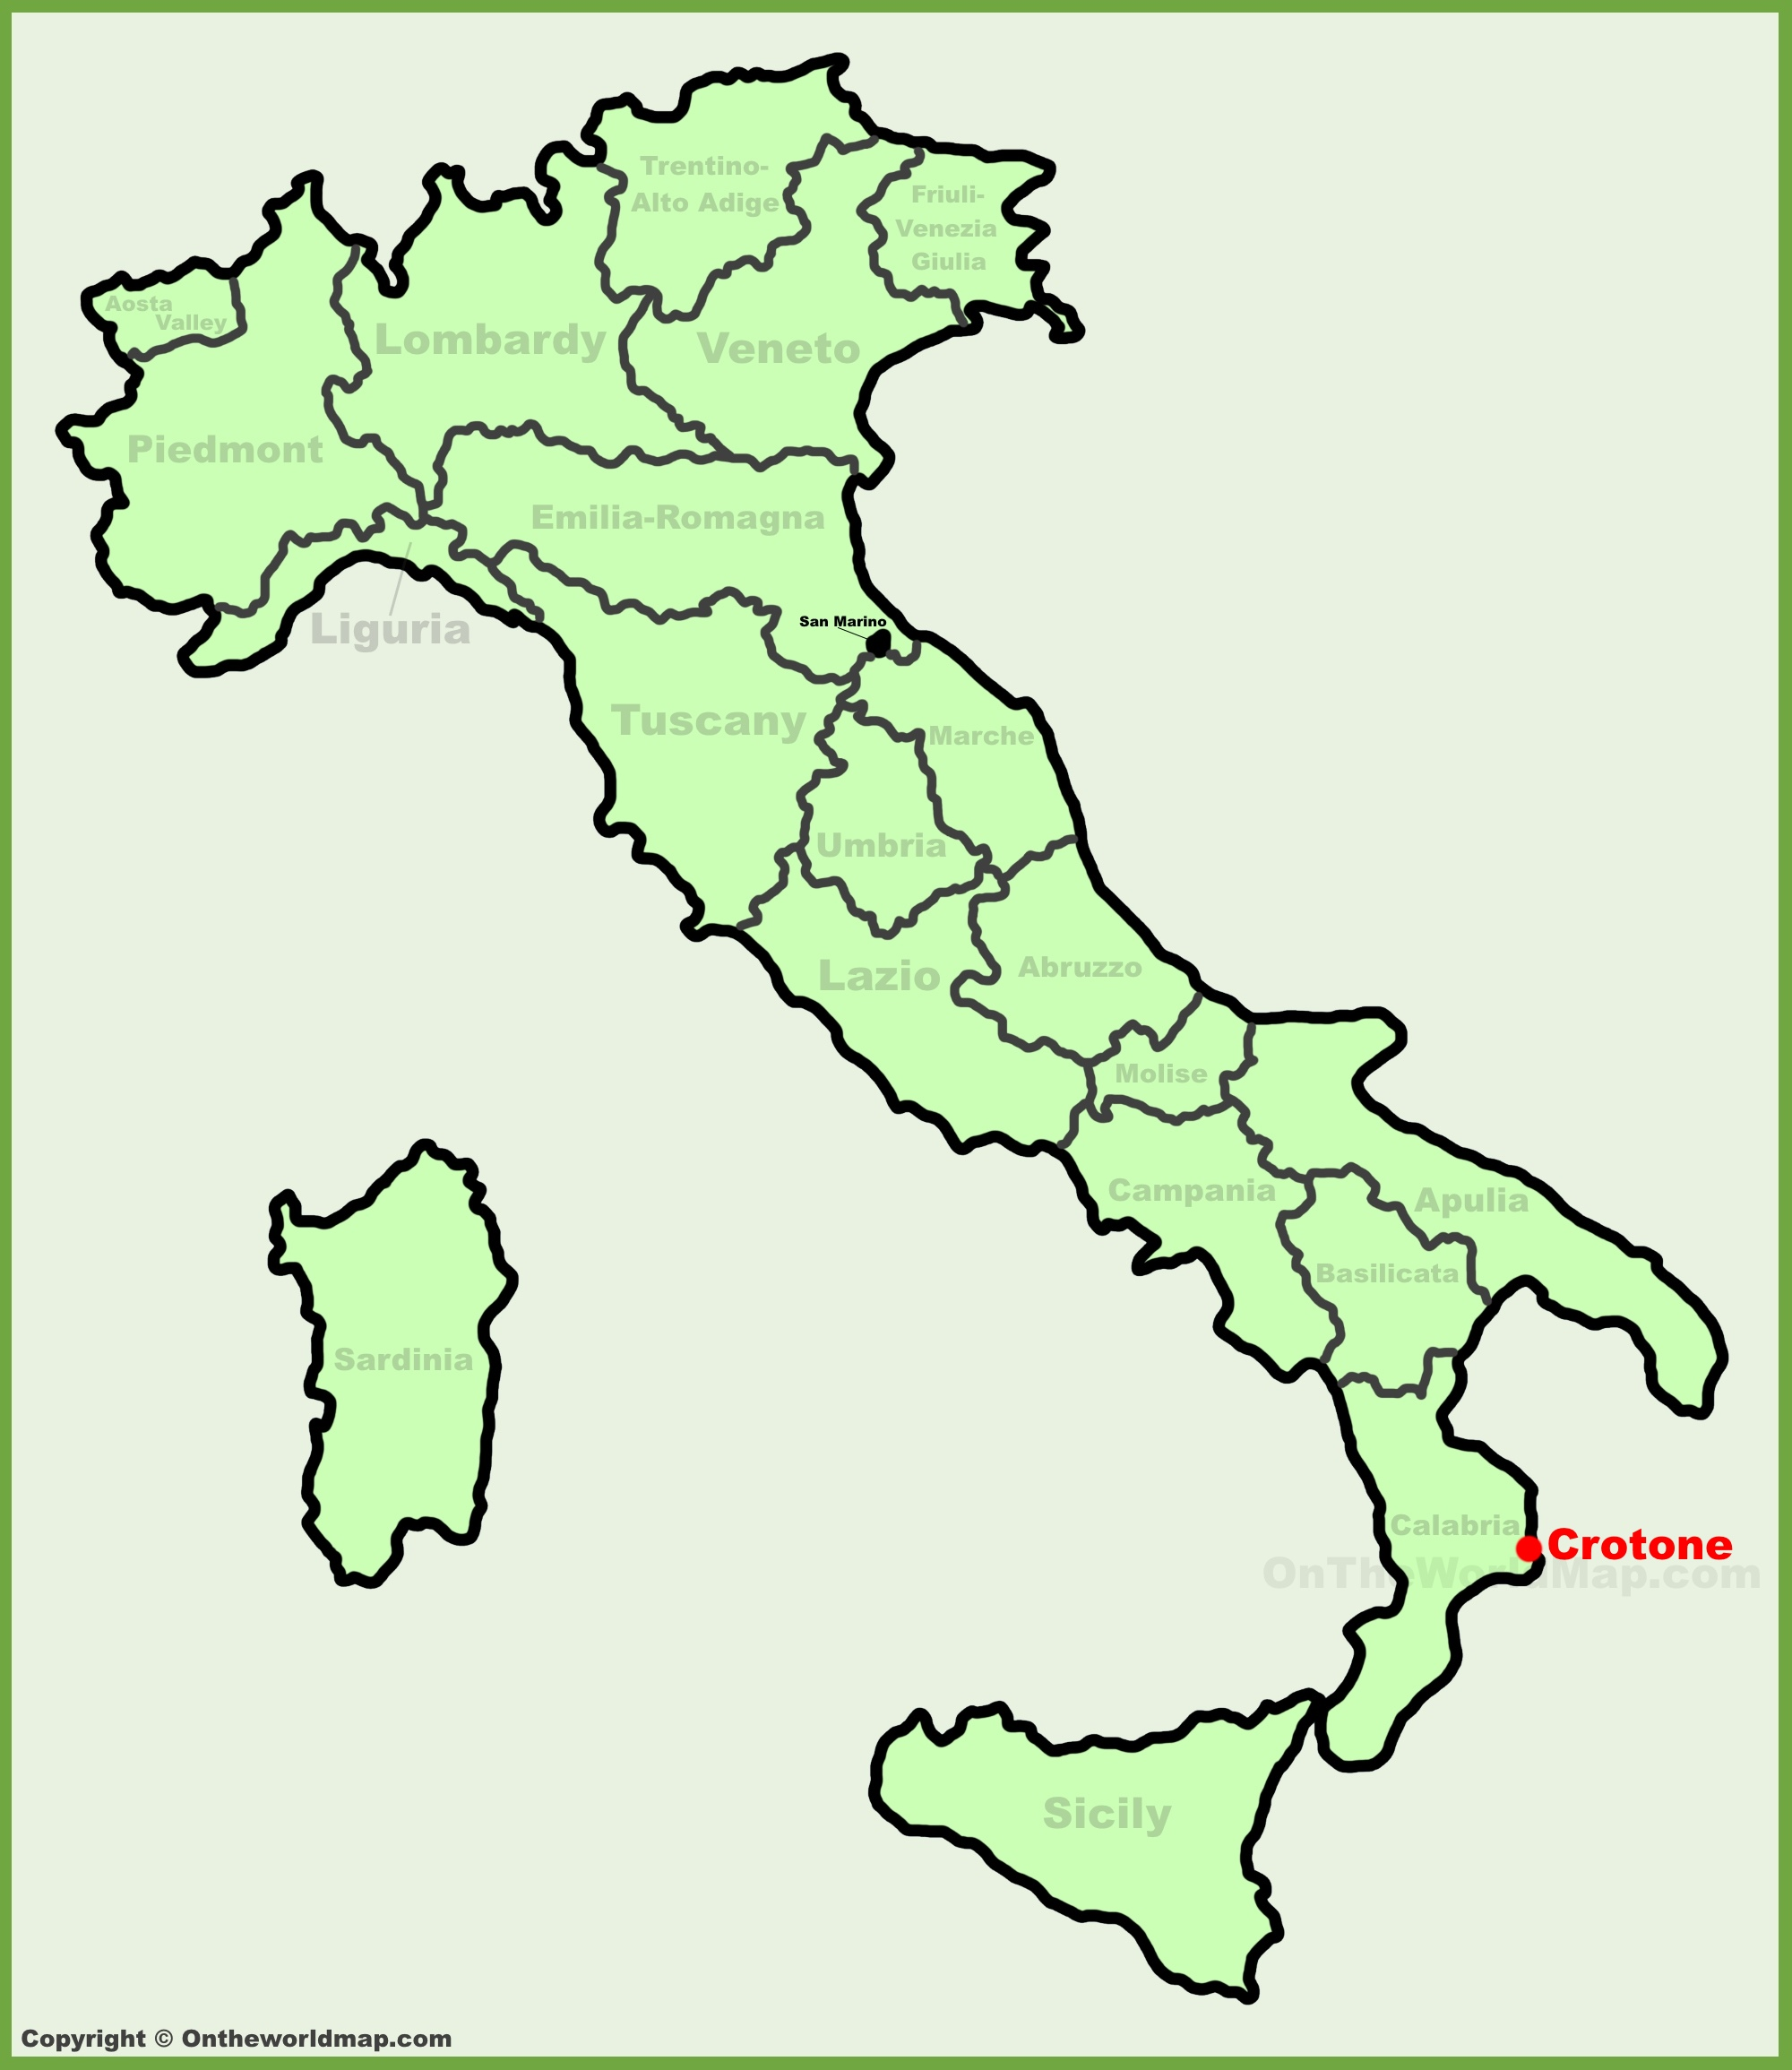 Crotone location on the Italy map